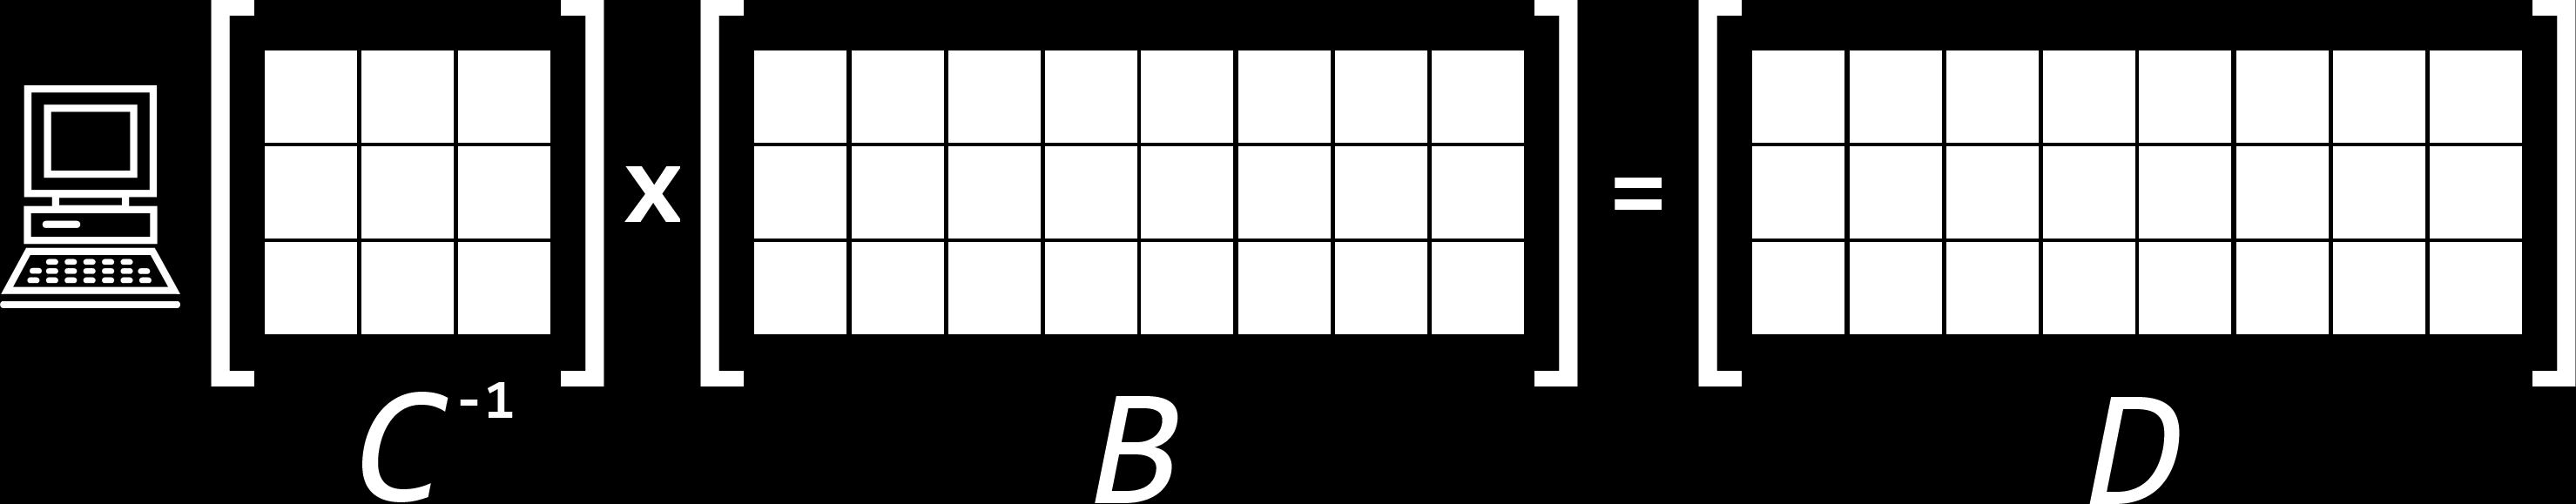 Figure 2.4: Peer receiving a coded block. The peer takes the coefficient vector V and data vector E and stores them as rows in its local coefficient matrix C and data matrix B. Figure 2.